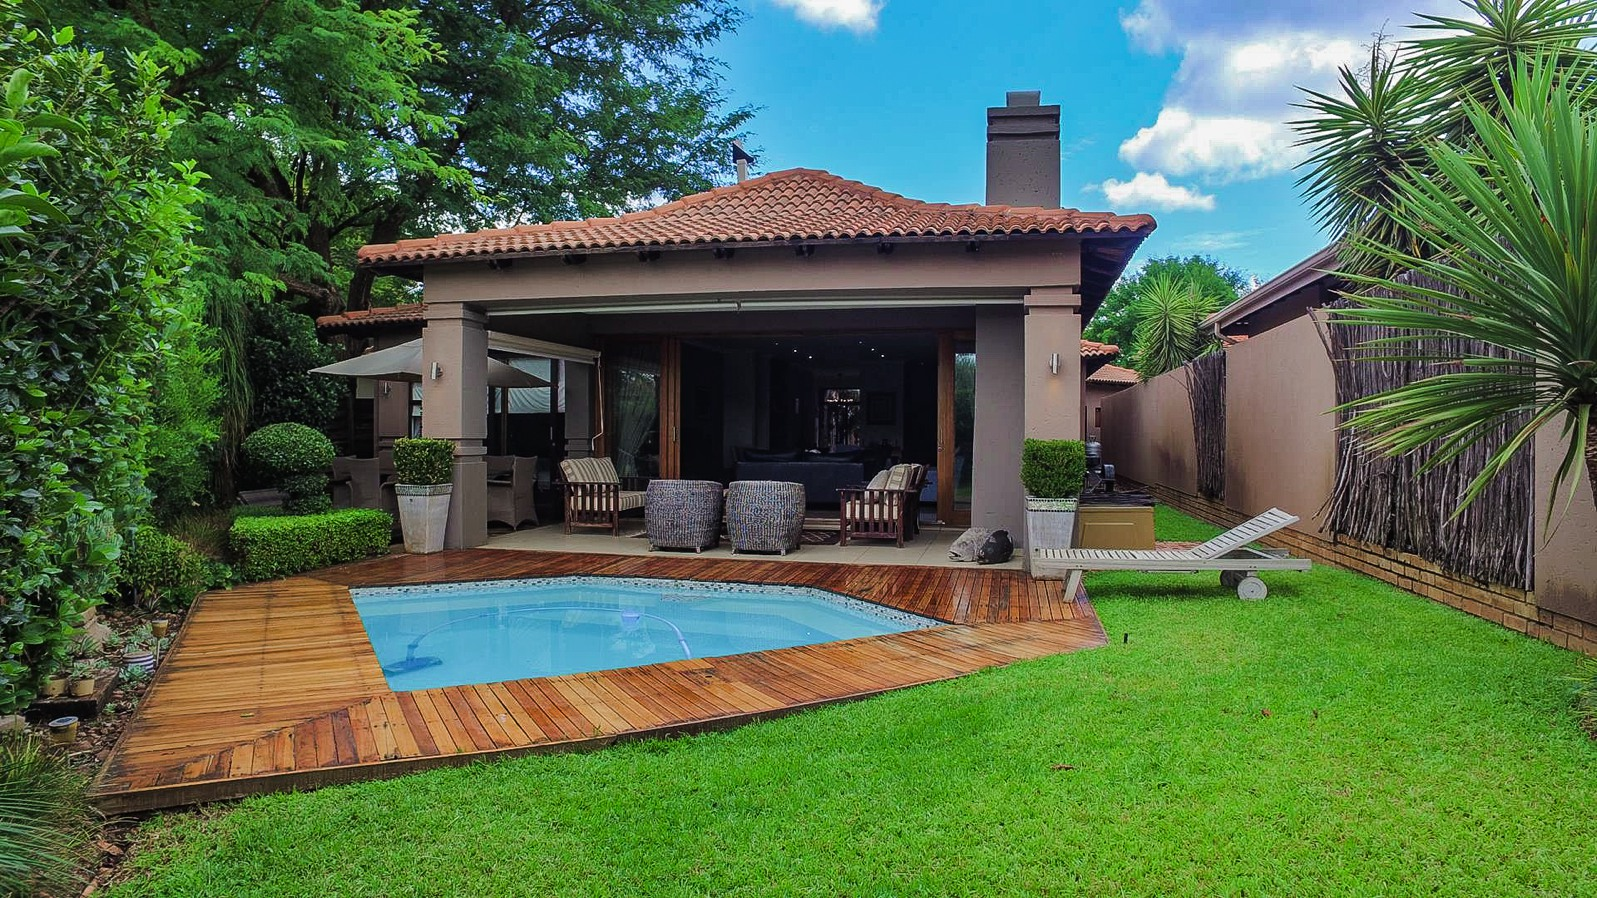 A CLASSIC CONTEMPORARY HOME IN A SECLUDED SETTING!